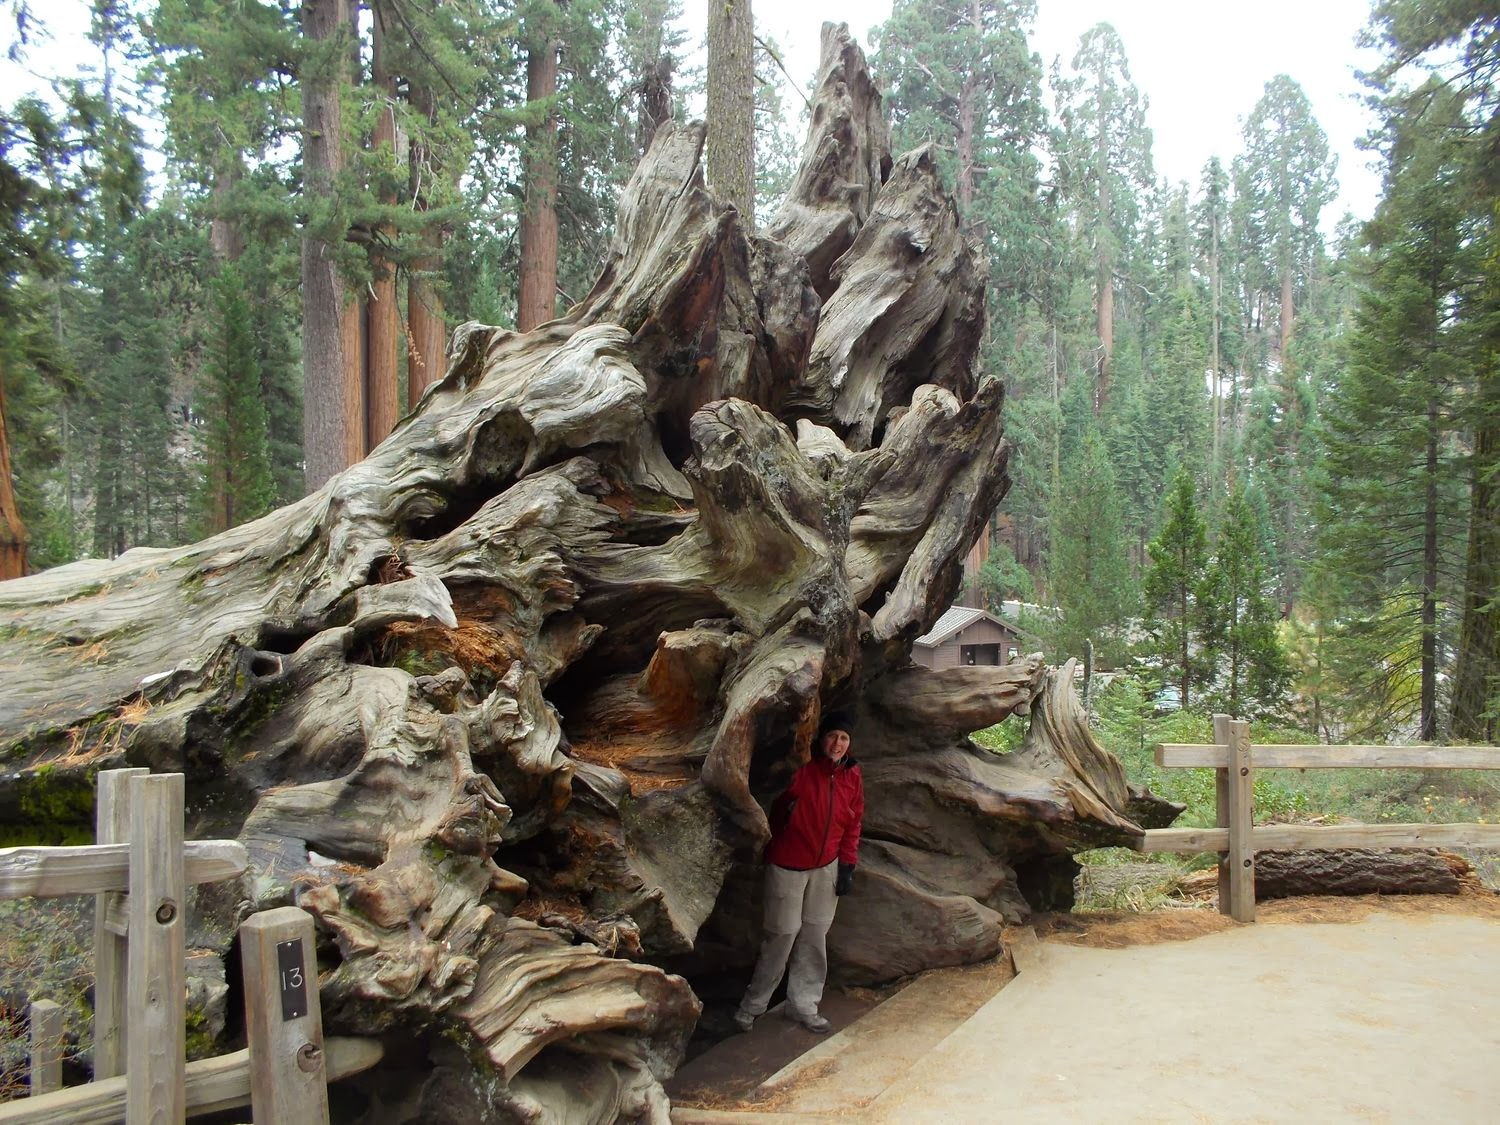 lodging park seki canyon there visit national sequoia kings california attraction camping getting in stevecalderaro cabins gettingthere